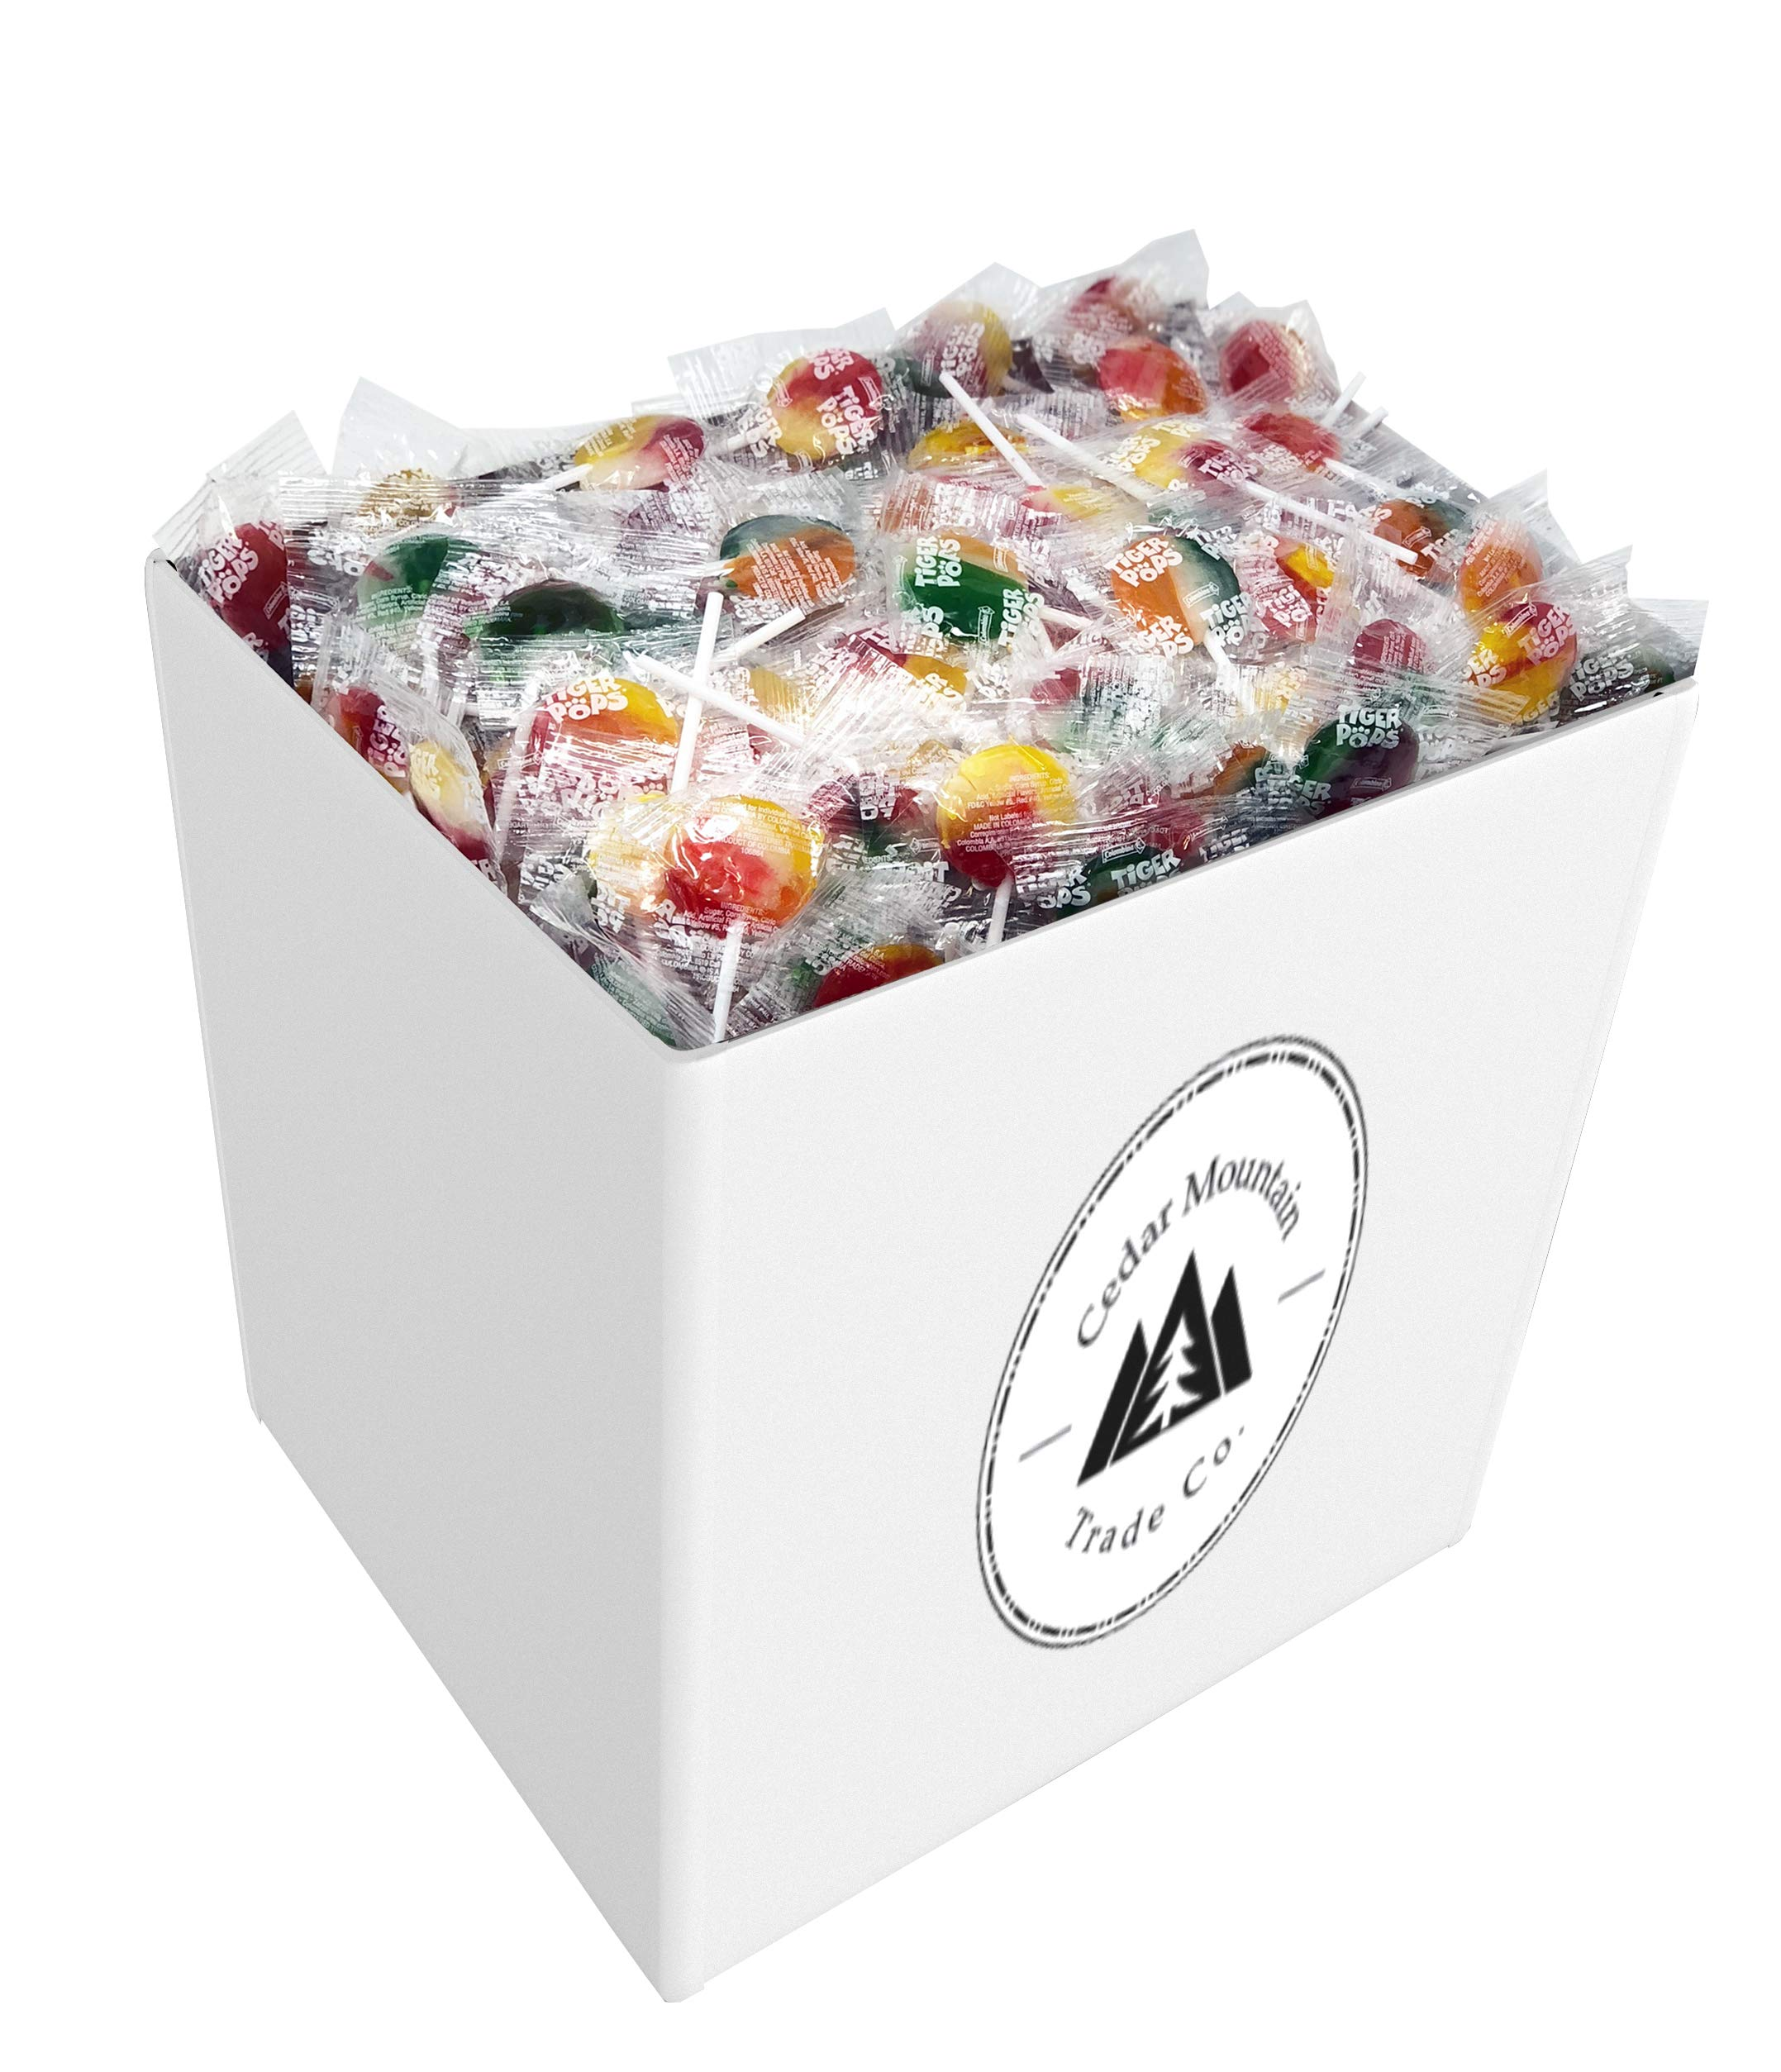 Bulk Lollipops - 5lbs of Assorted Flavors of Mixed Fruit Suckers - Bulk Candy, Great for Office, Bank, School, Kids, and Adults Who Want the Finest Swirl Lollipop Candy